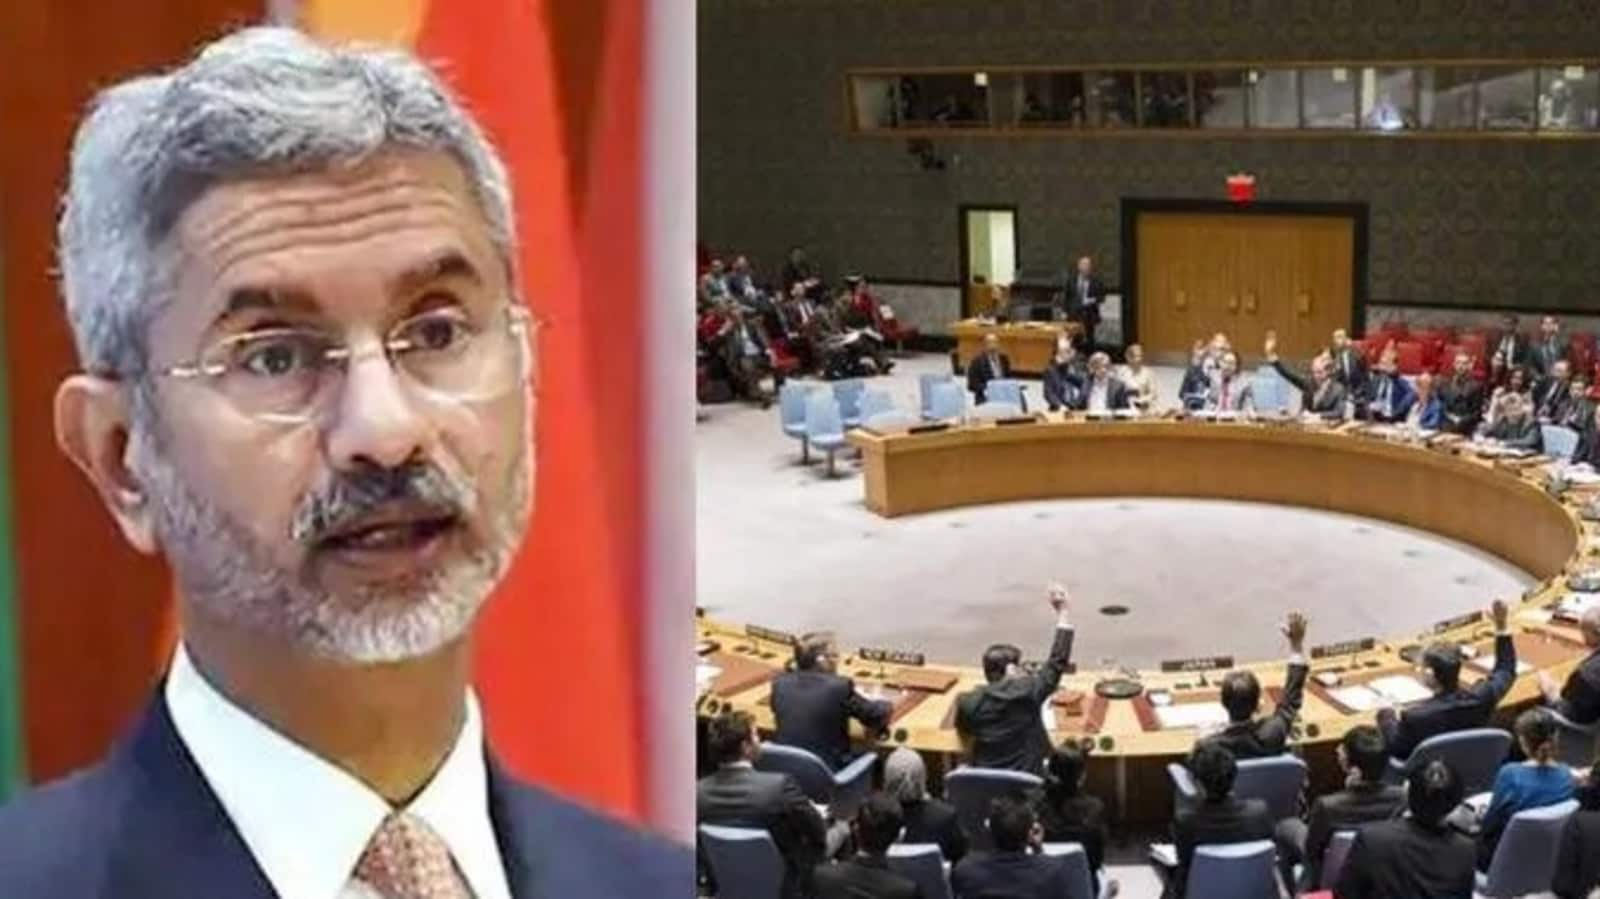 India stands by Afghan people, provided it has unfettered access: Jaishankar